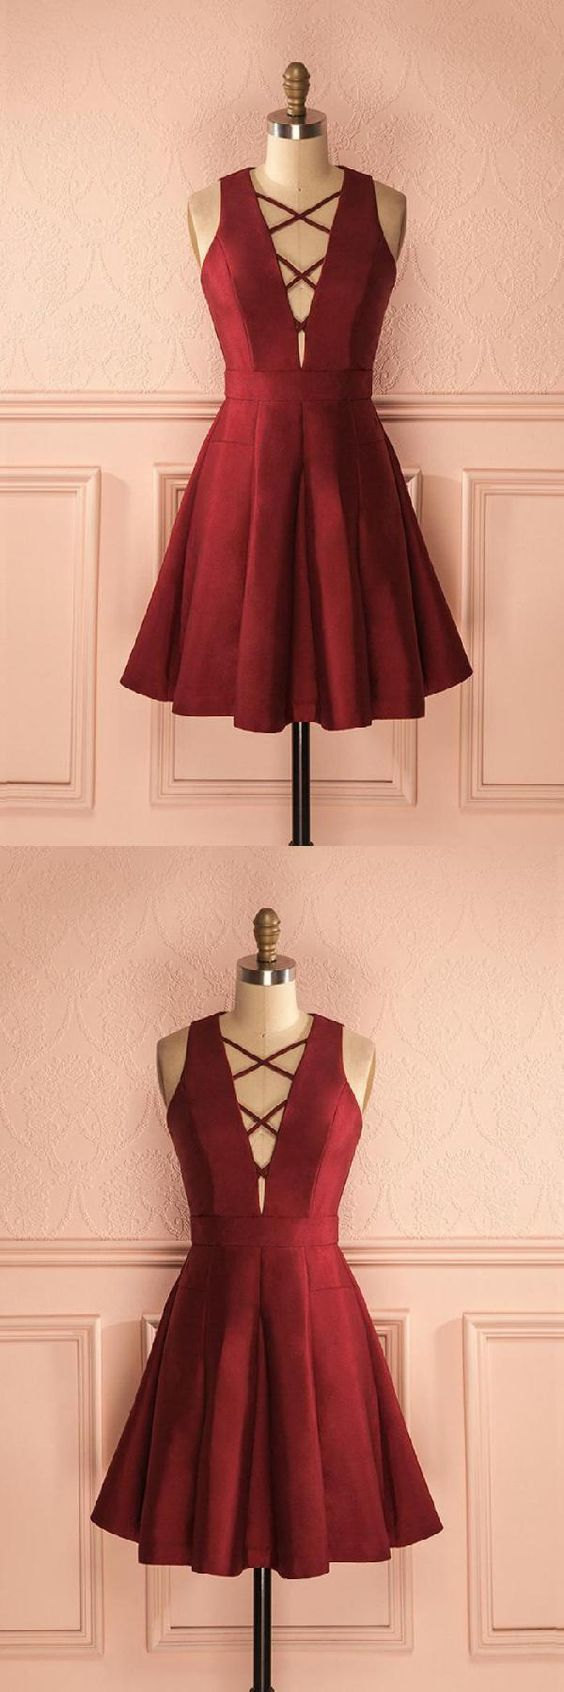 Lace Homecoming Dresses, Burgundy Homecoming Dresses